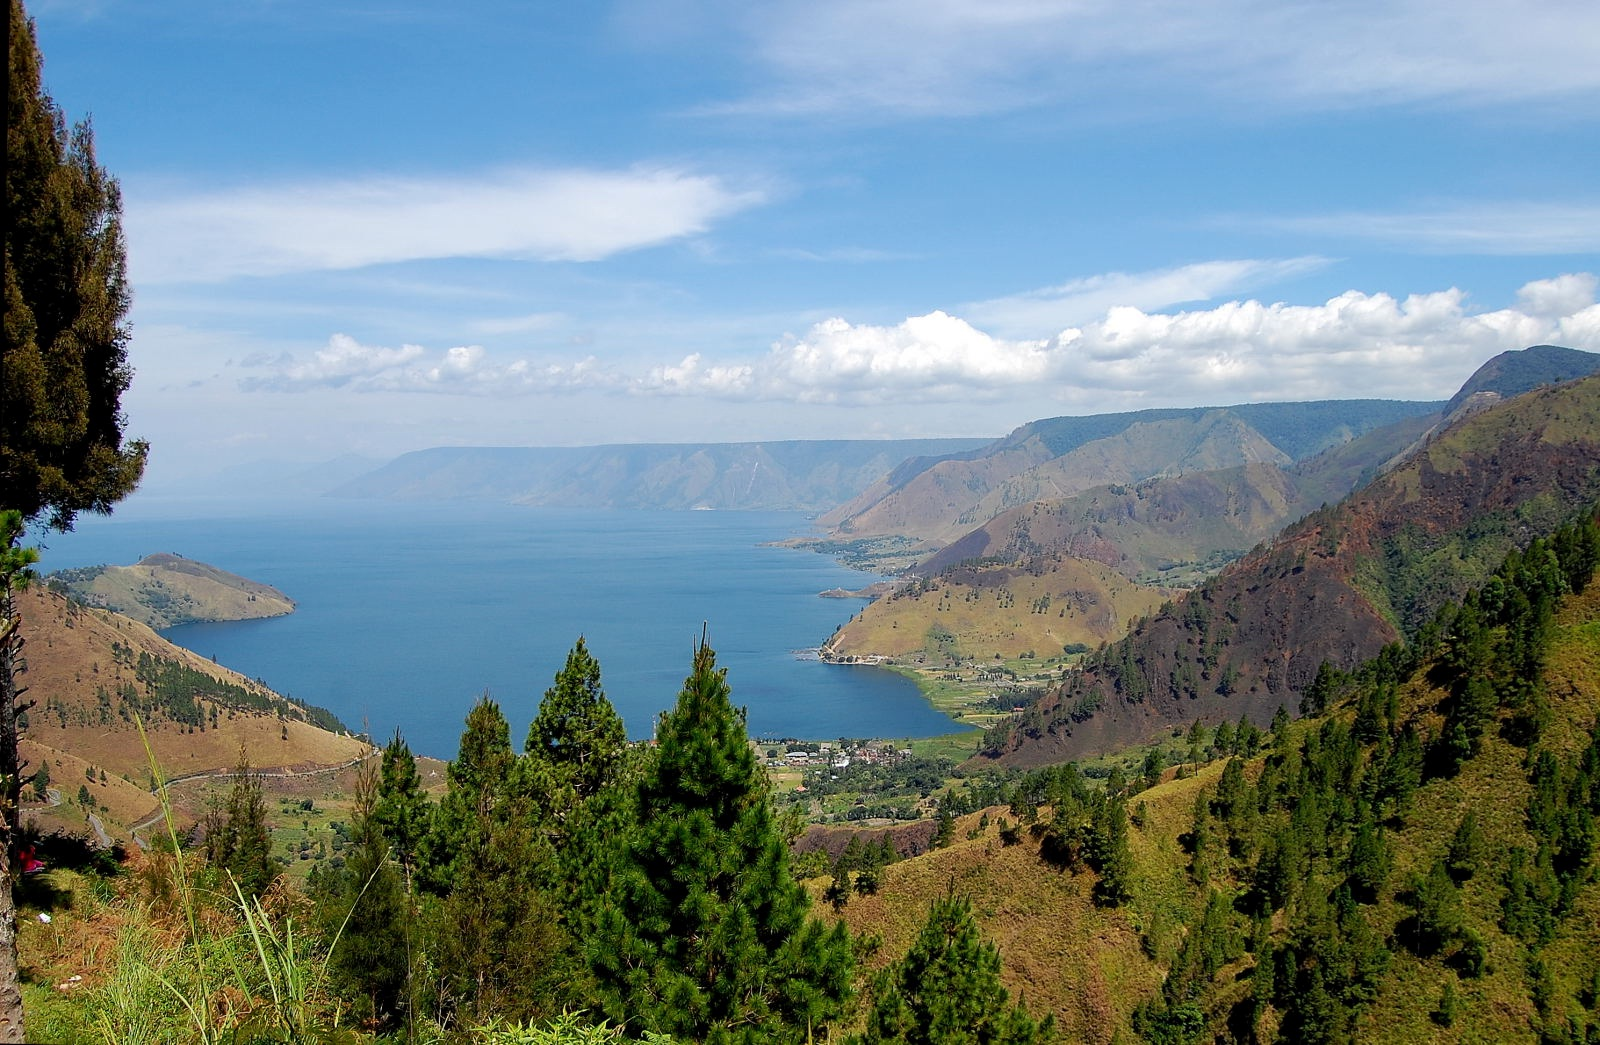 Toba Lake view from Tongging Village